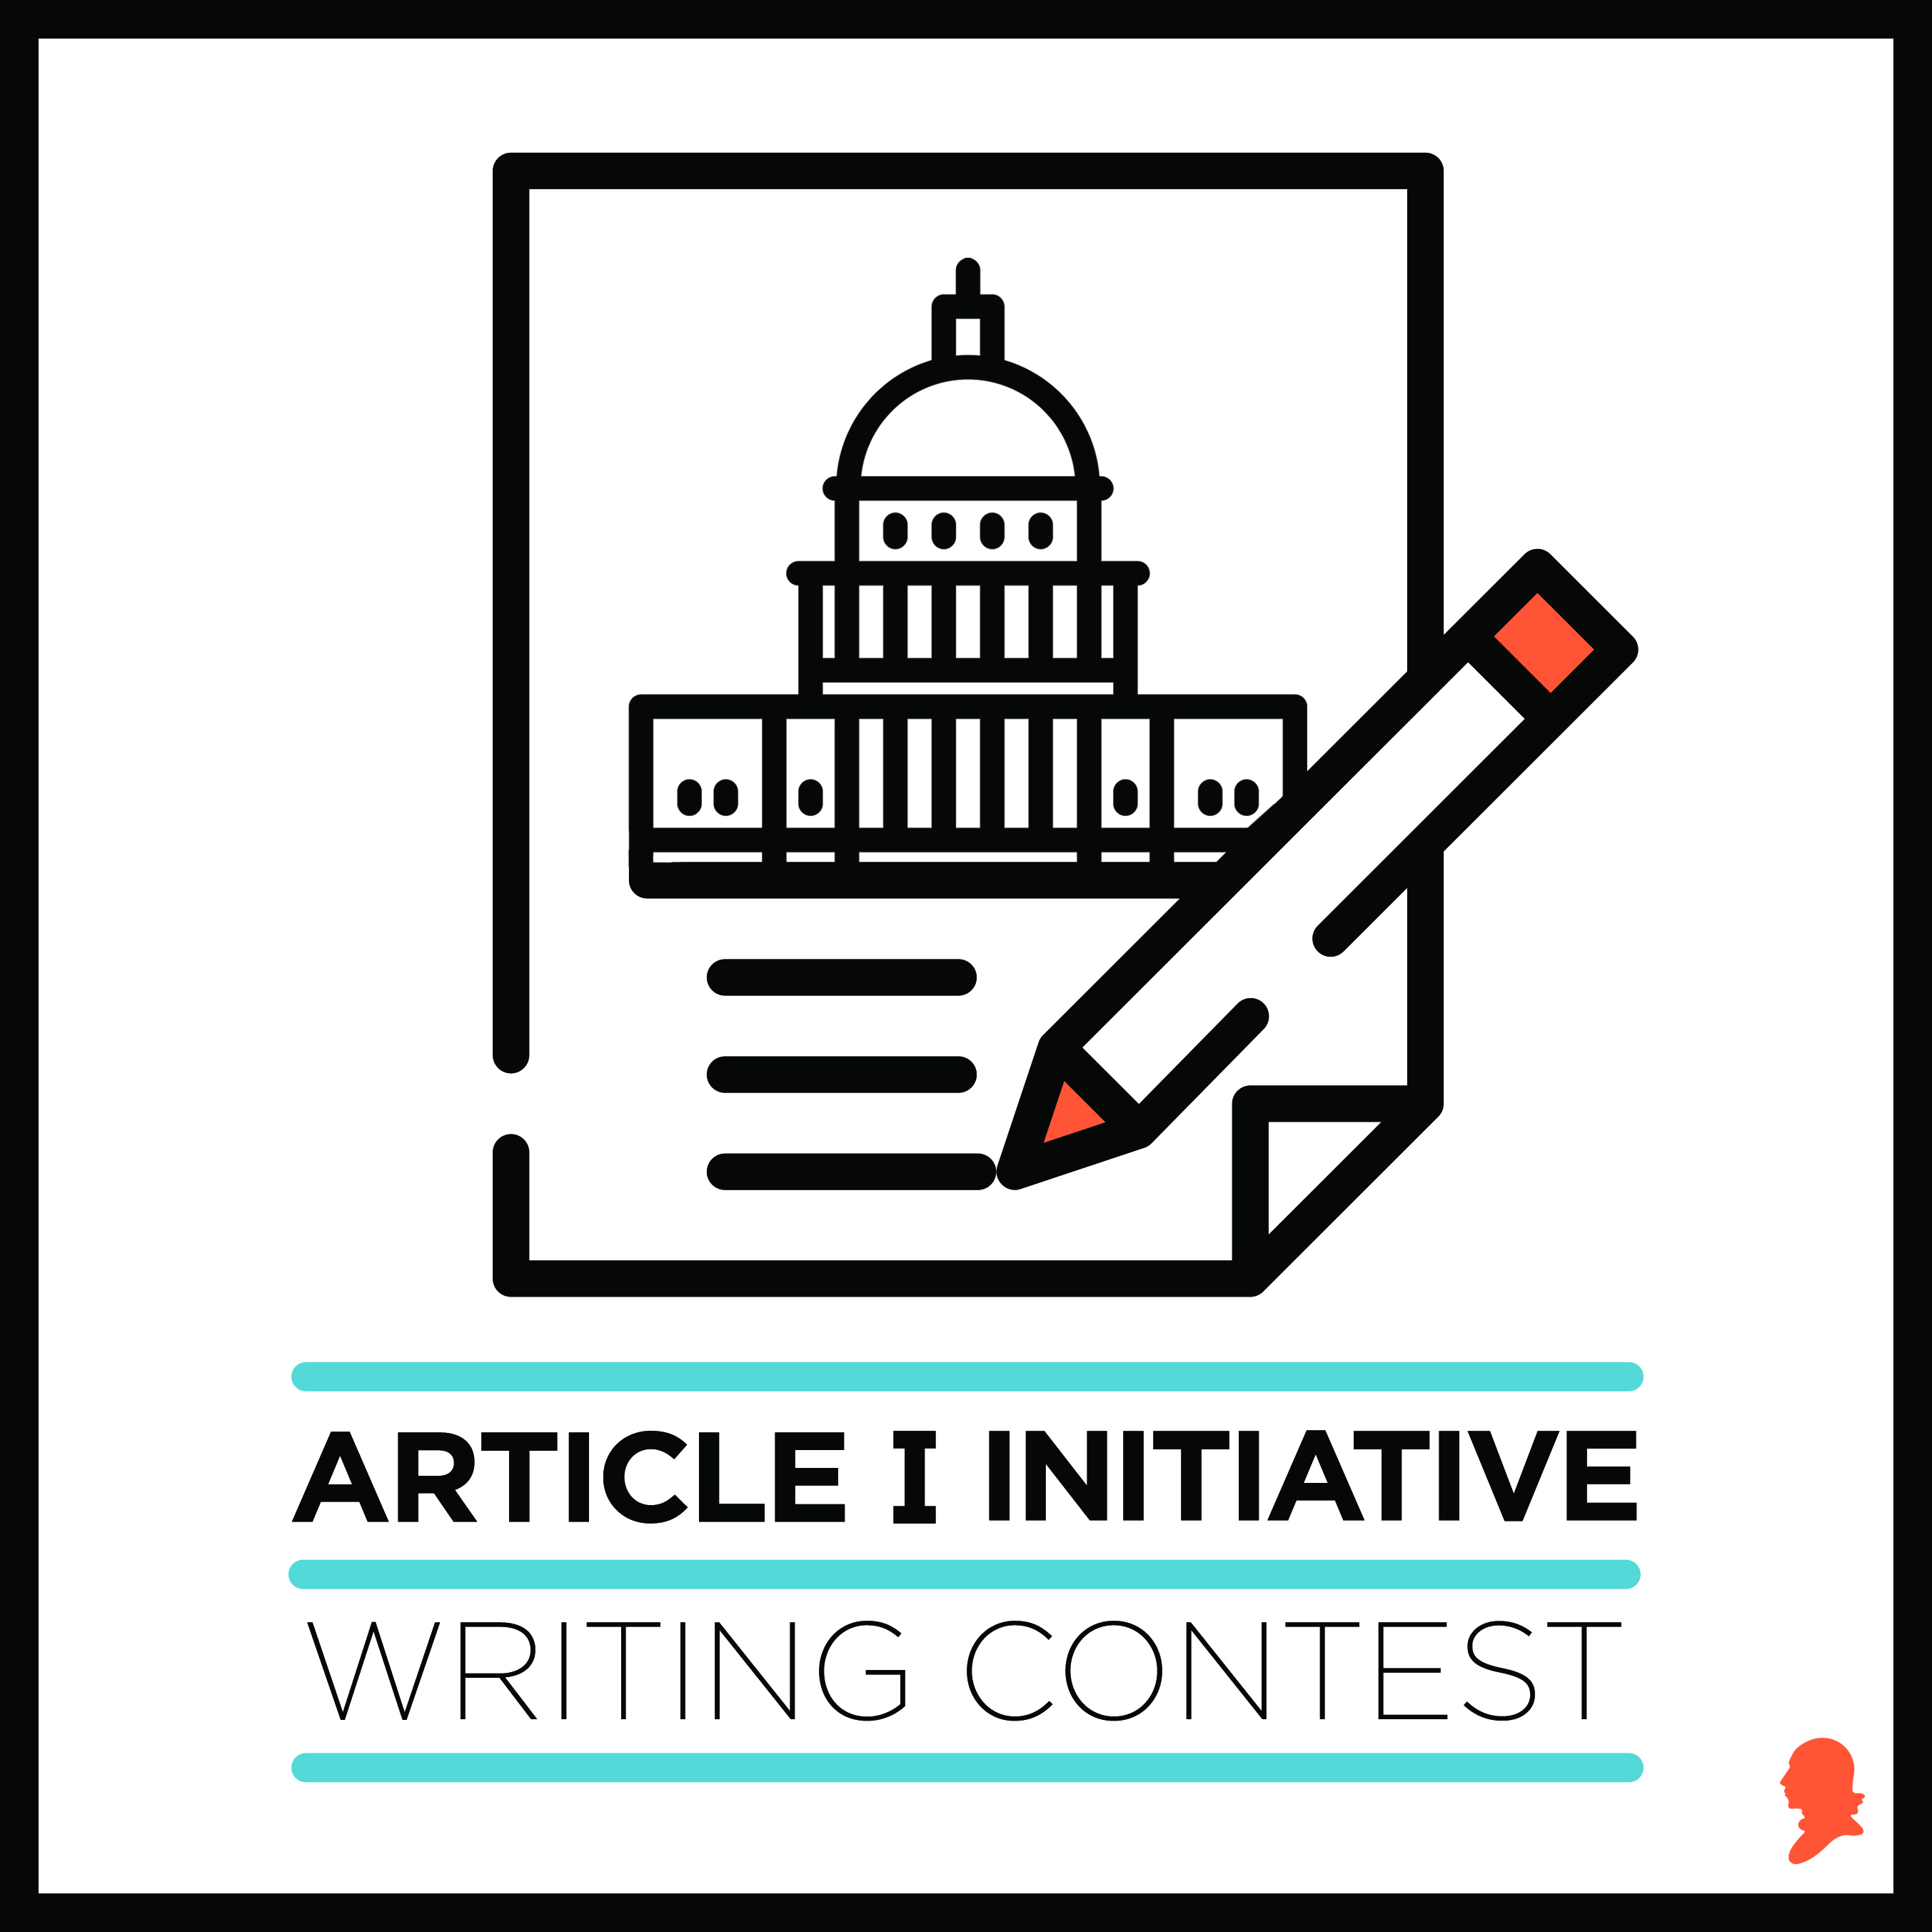 Announcing the Fourth Annual Article I Initiative Writing Contest